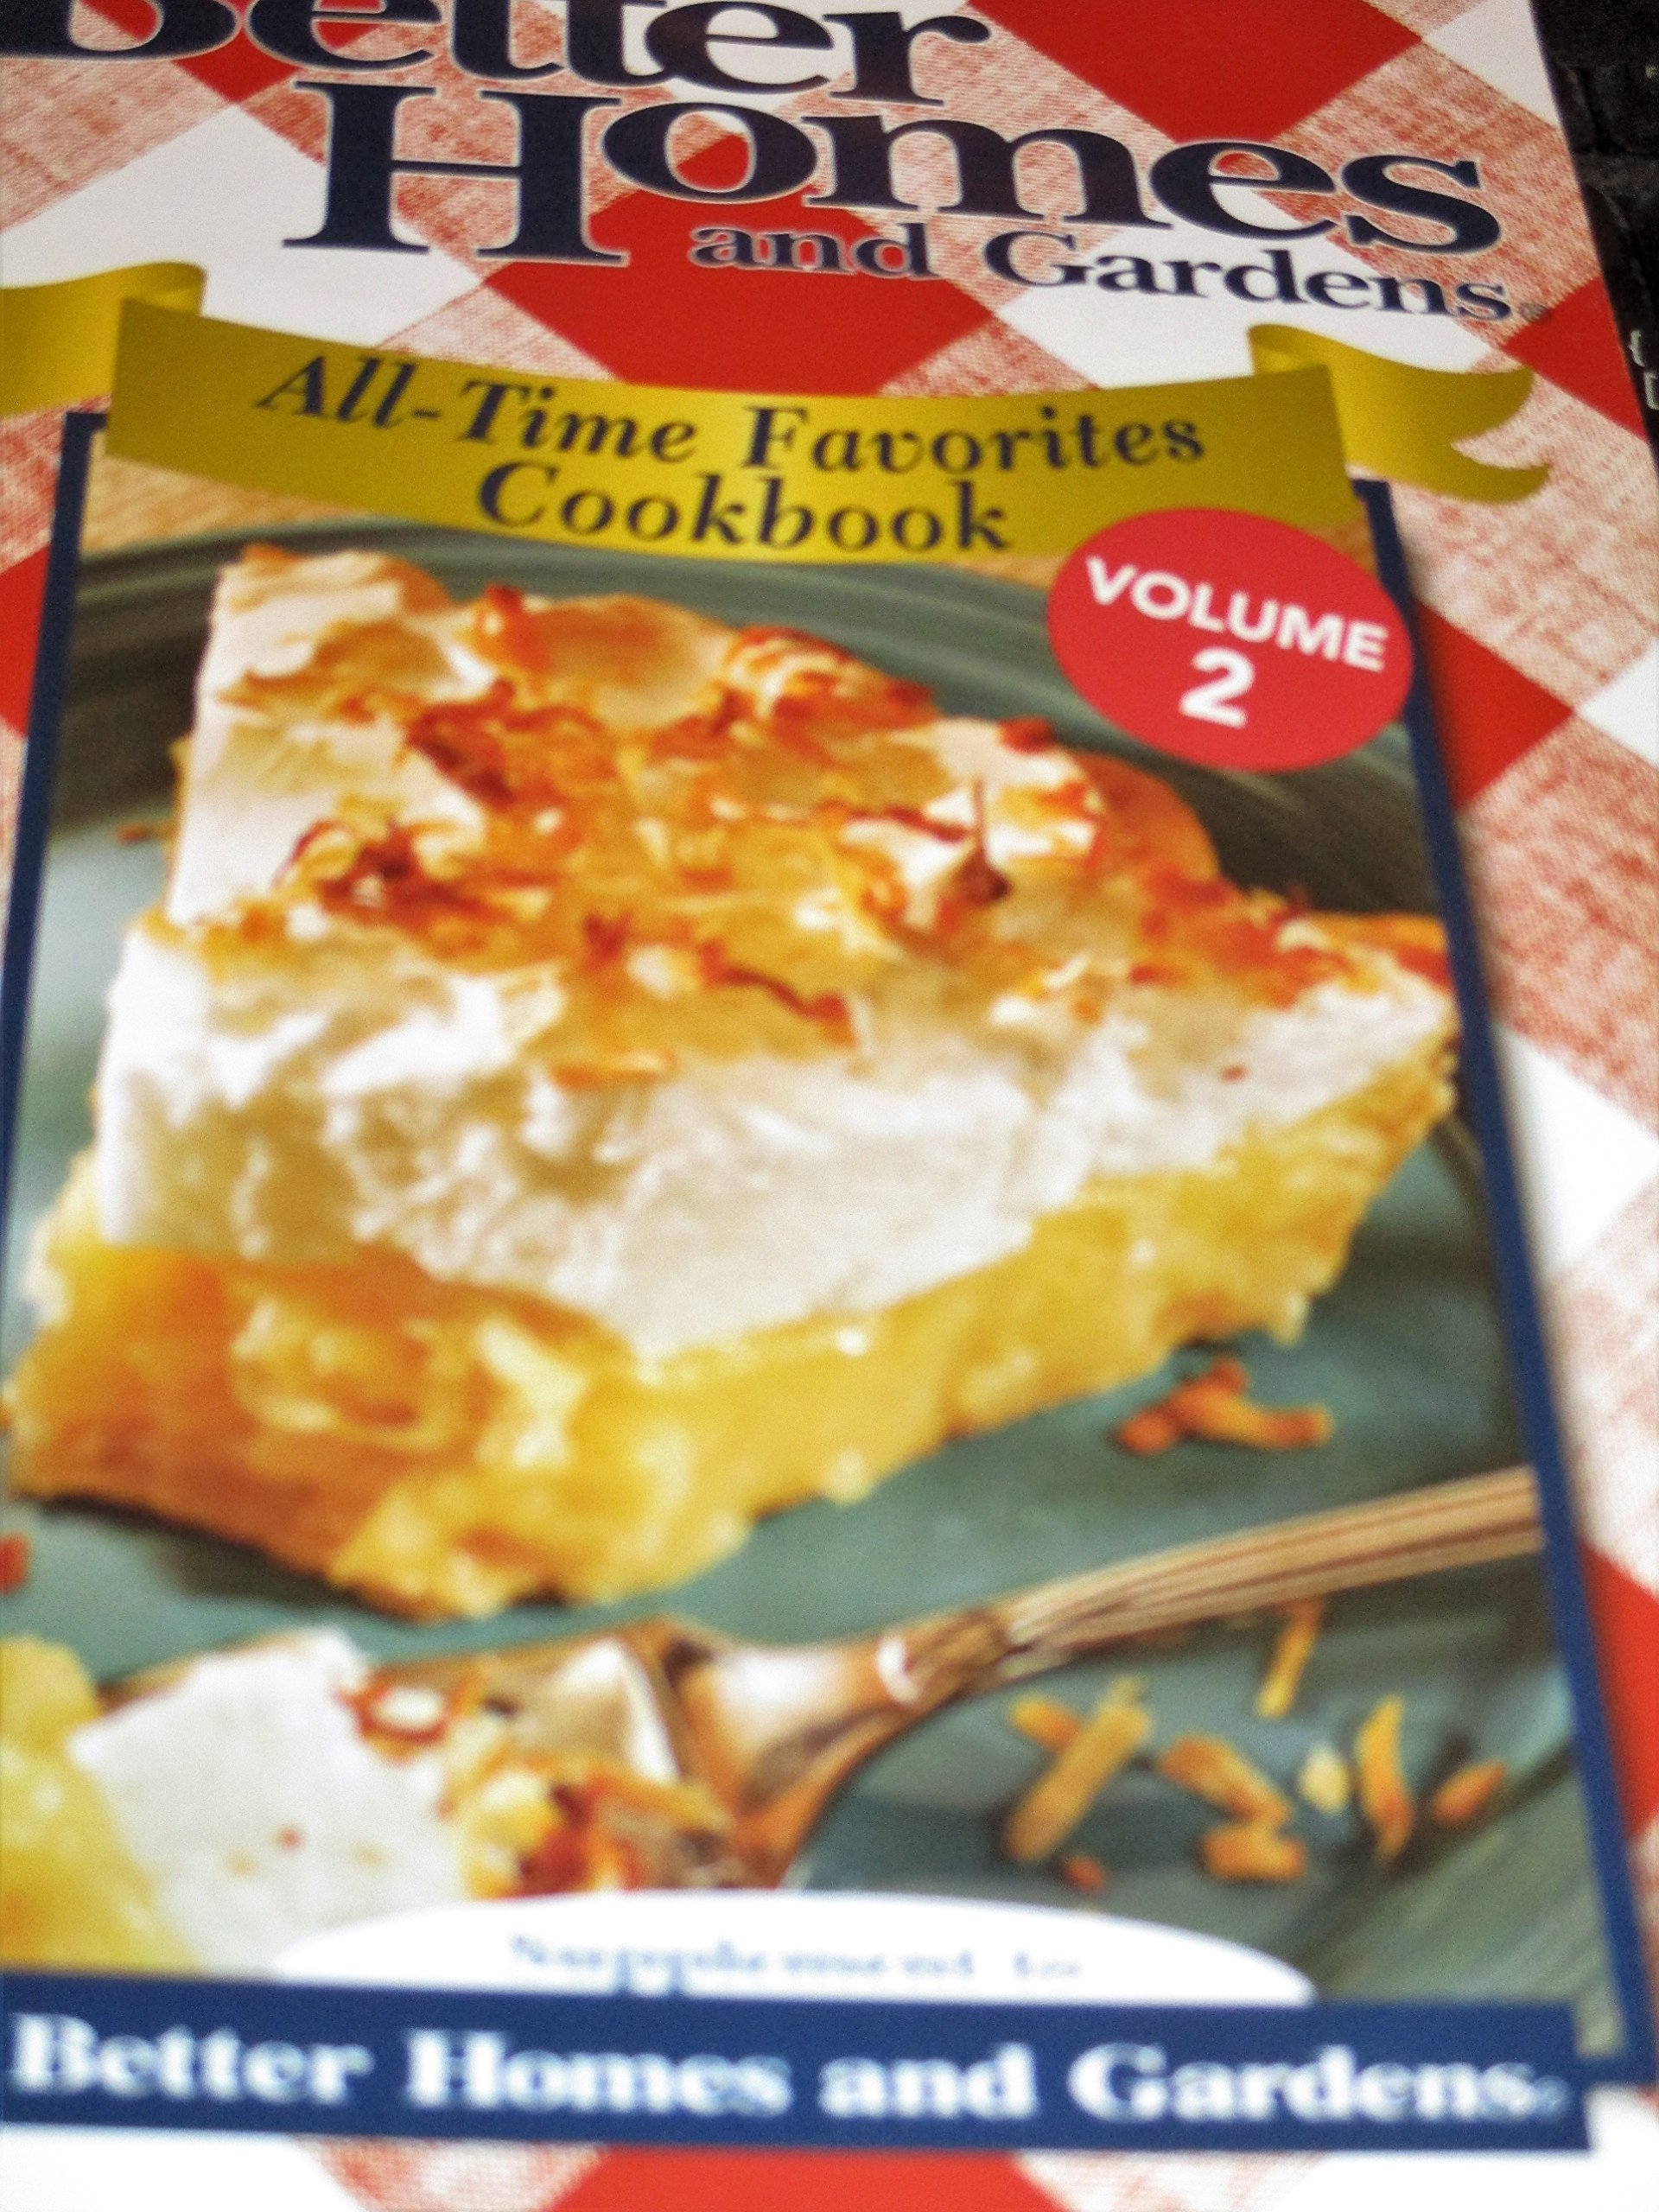 Better Home and Gardens All Time Favorites Cookbook Volume 2